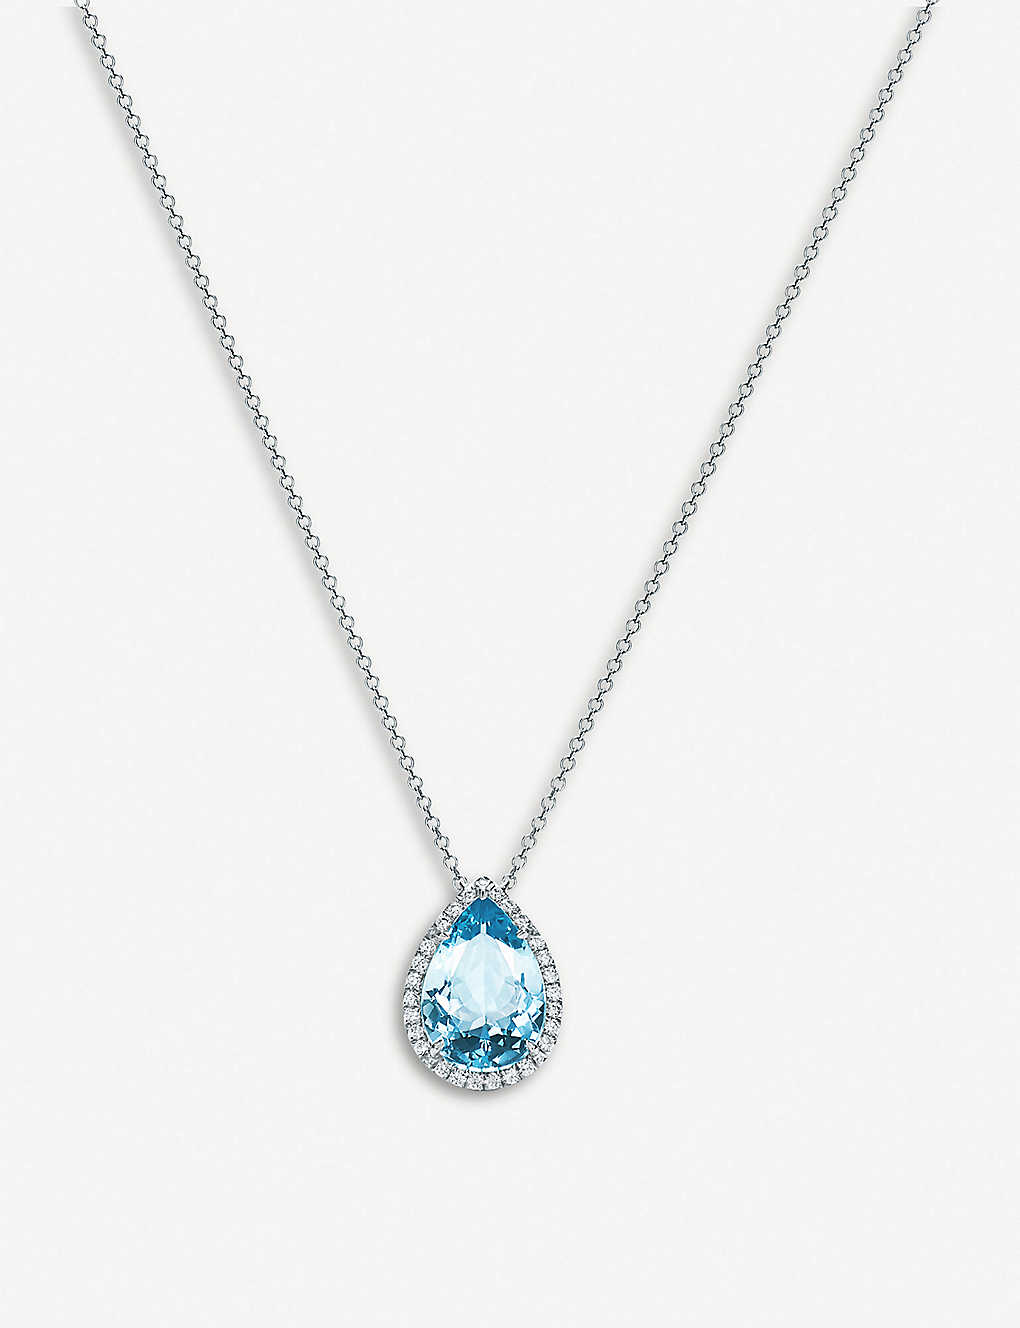 7bdaa281f TIFFANY & CO - Soleste platinum, diamond and aquamarine teadrop ...